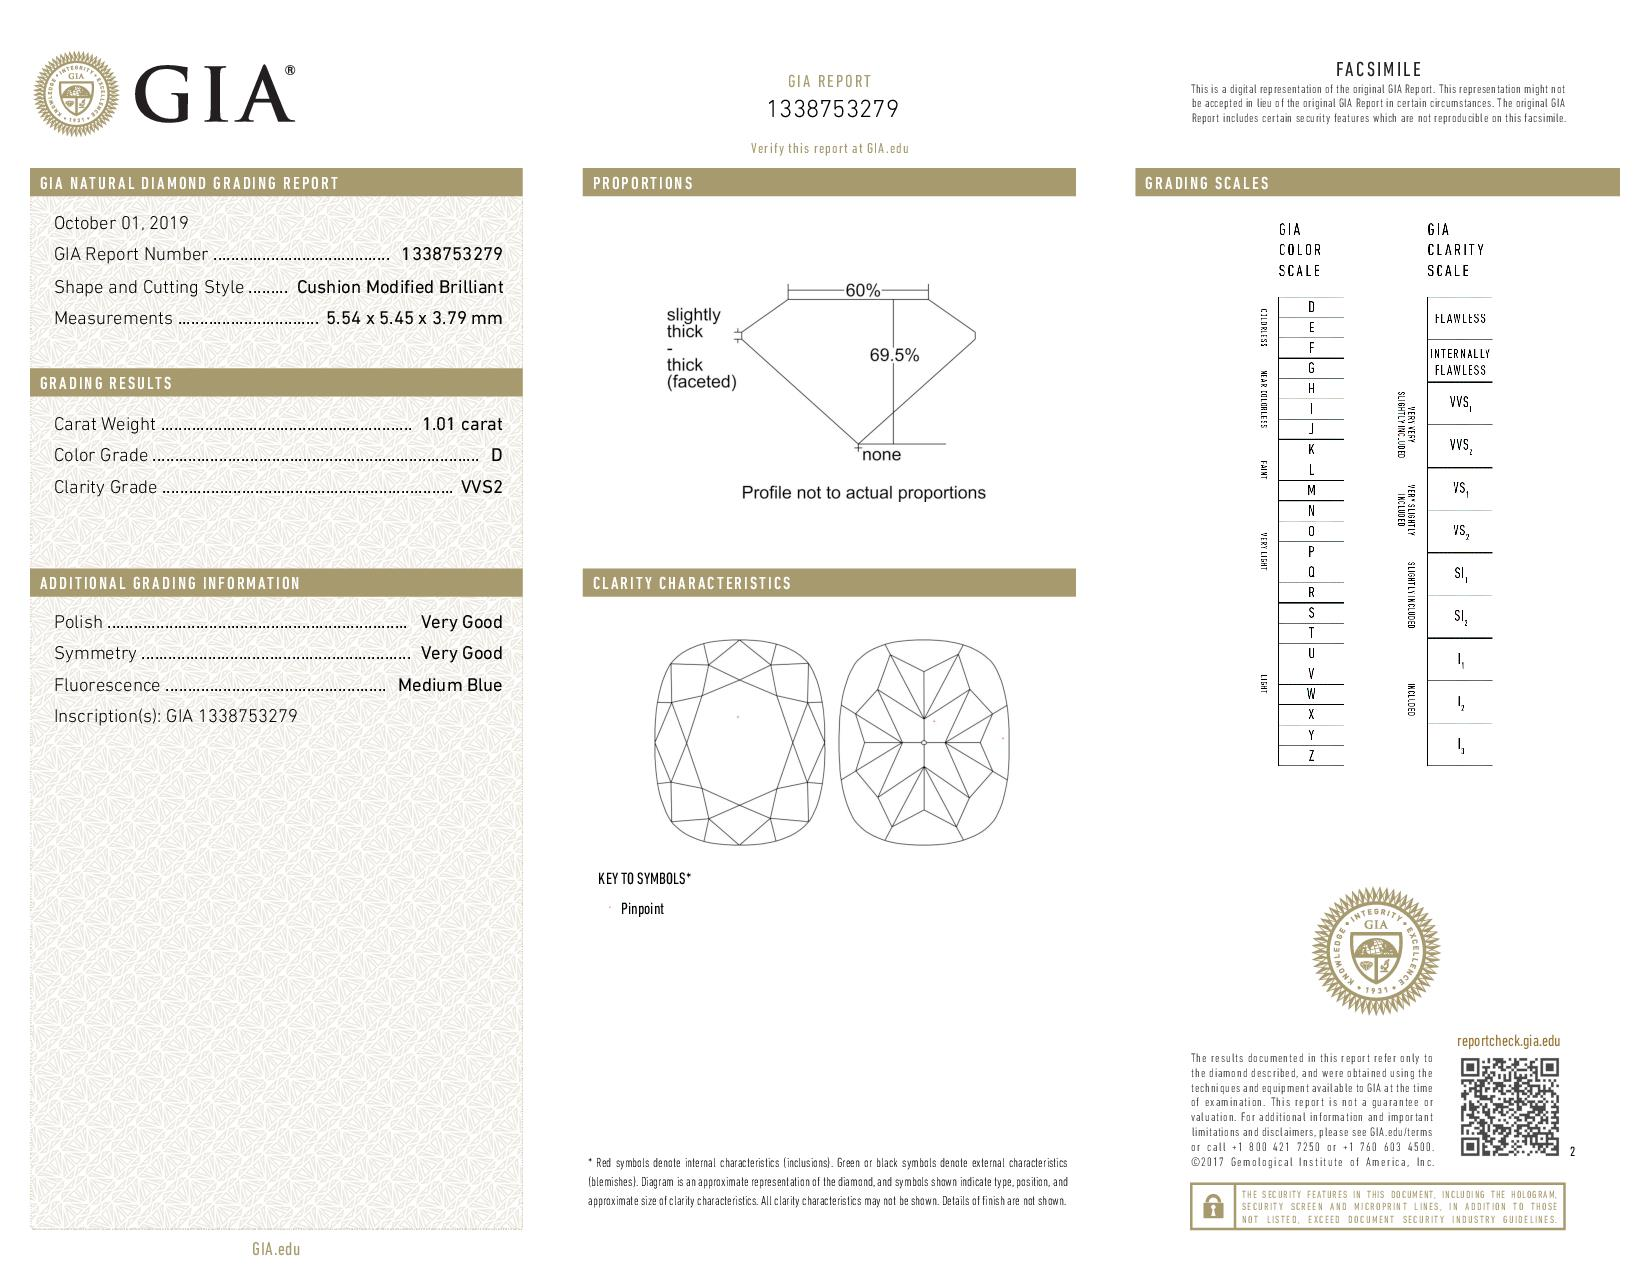 This is a 1.01 carat cushion shape, D color, VVS2 clarity natural diamond accompanied by a GIA grading report.